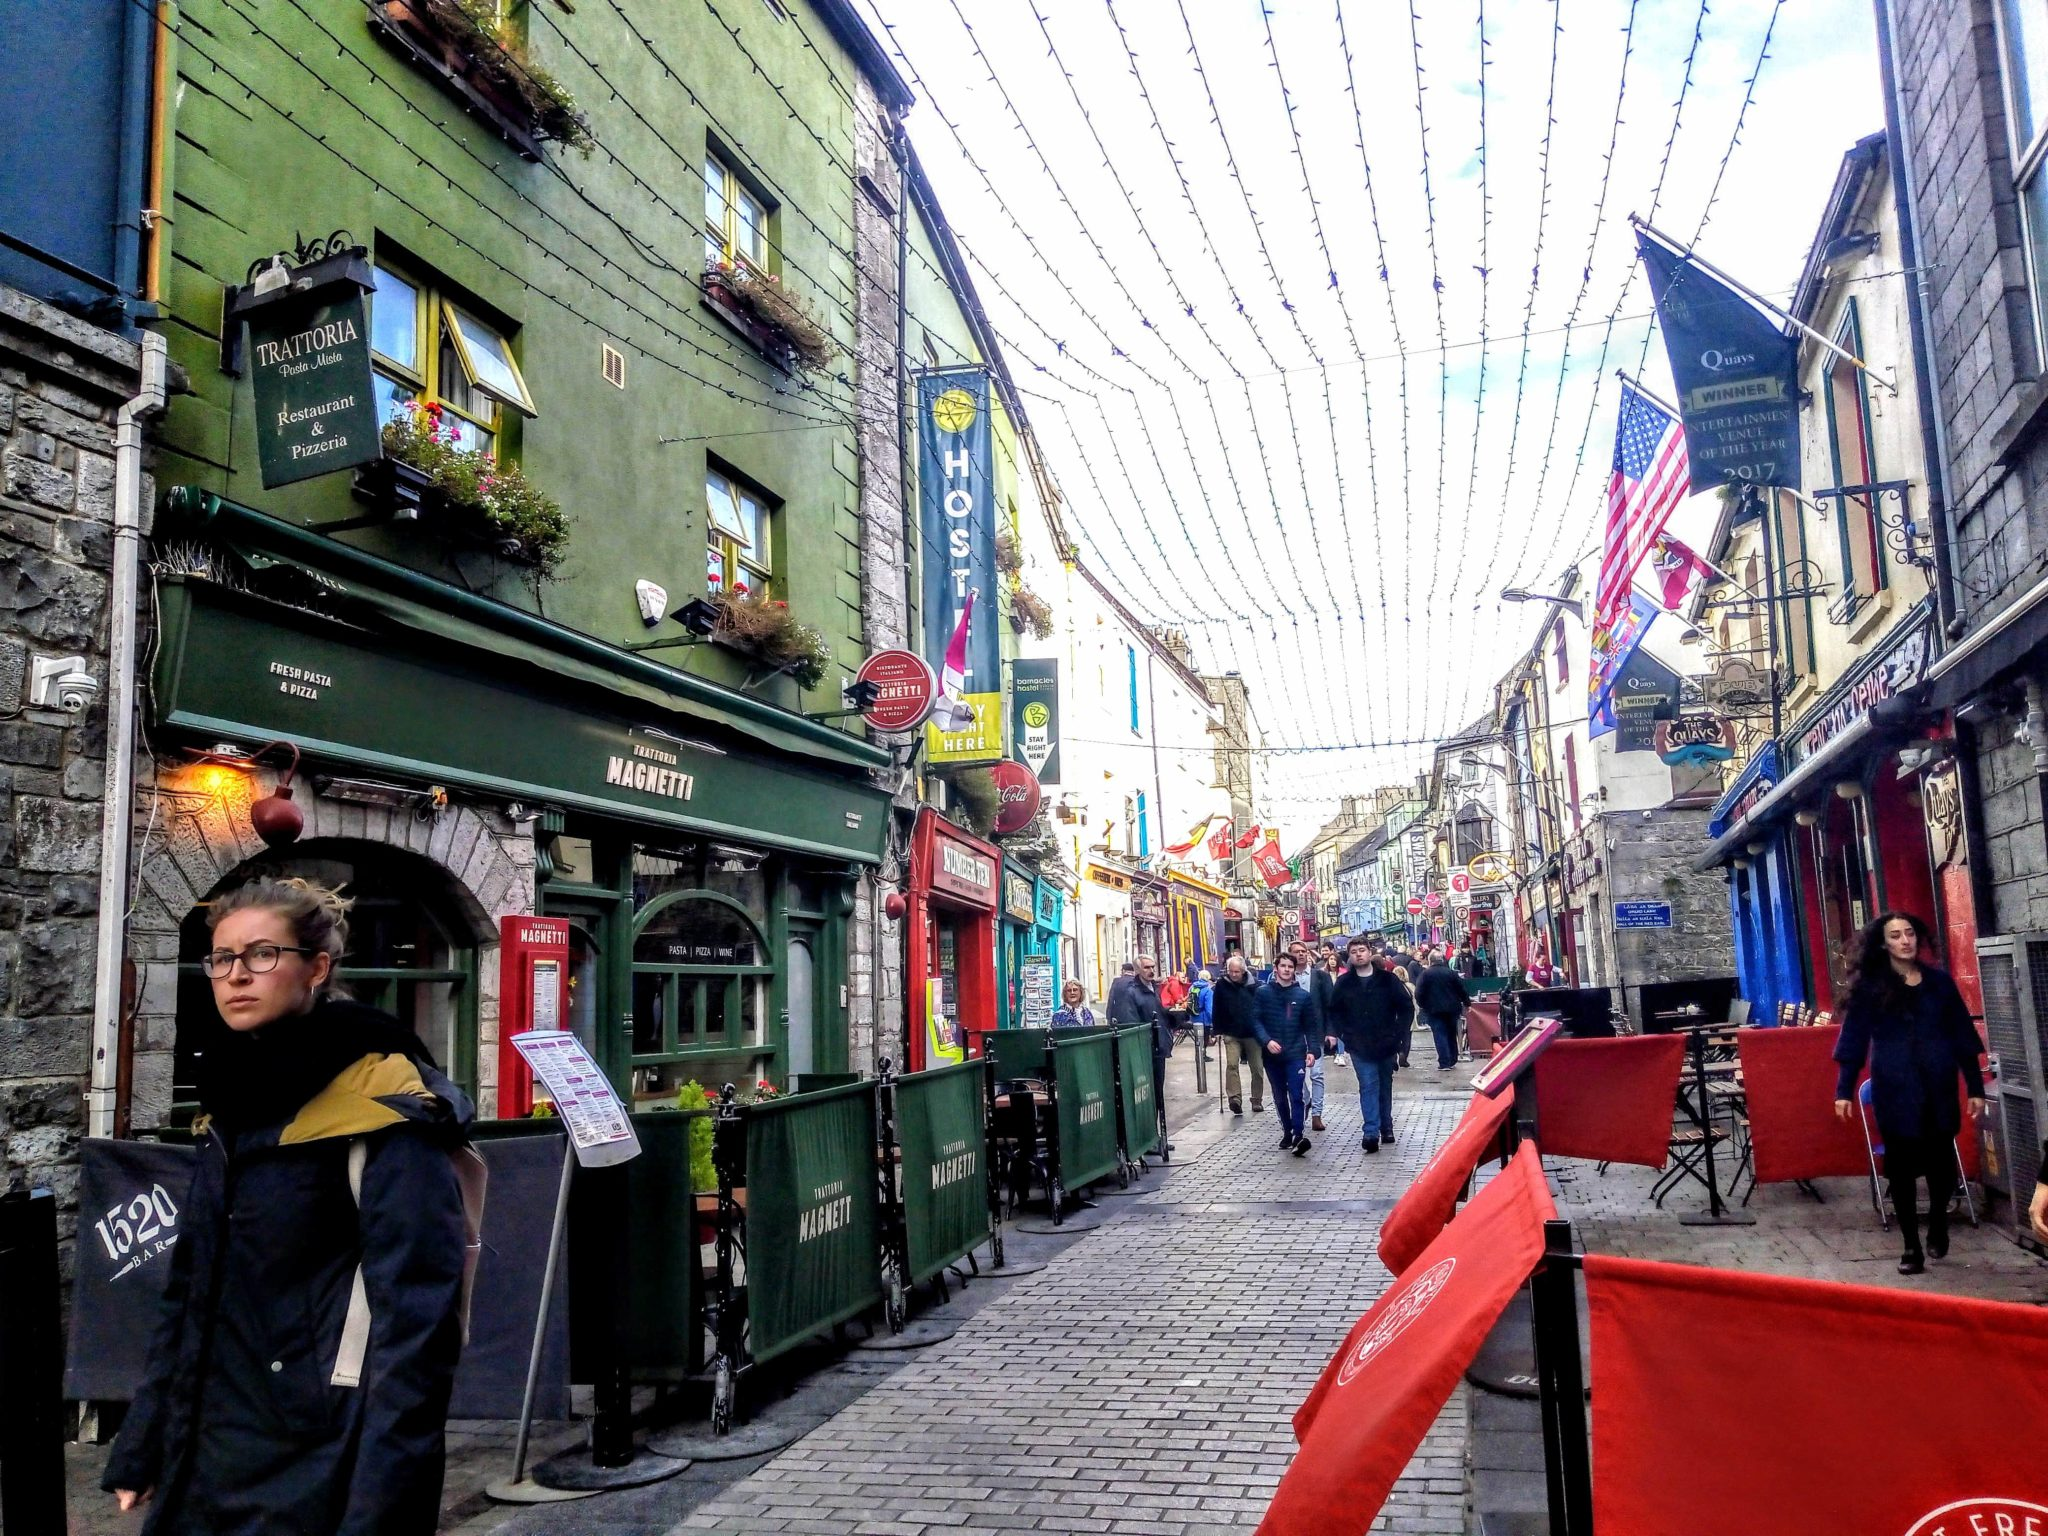 Galway city with shops bars and poeple